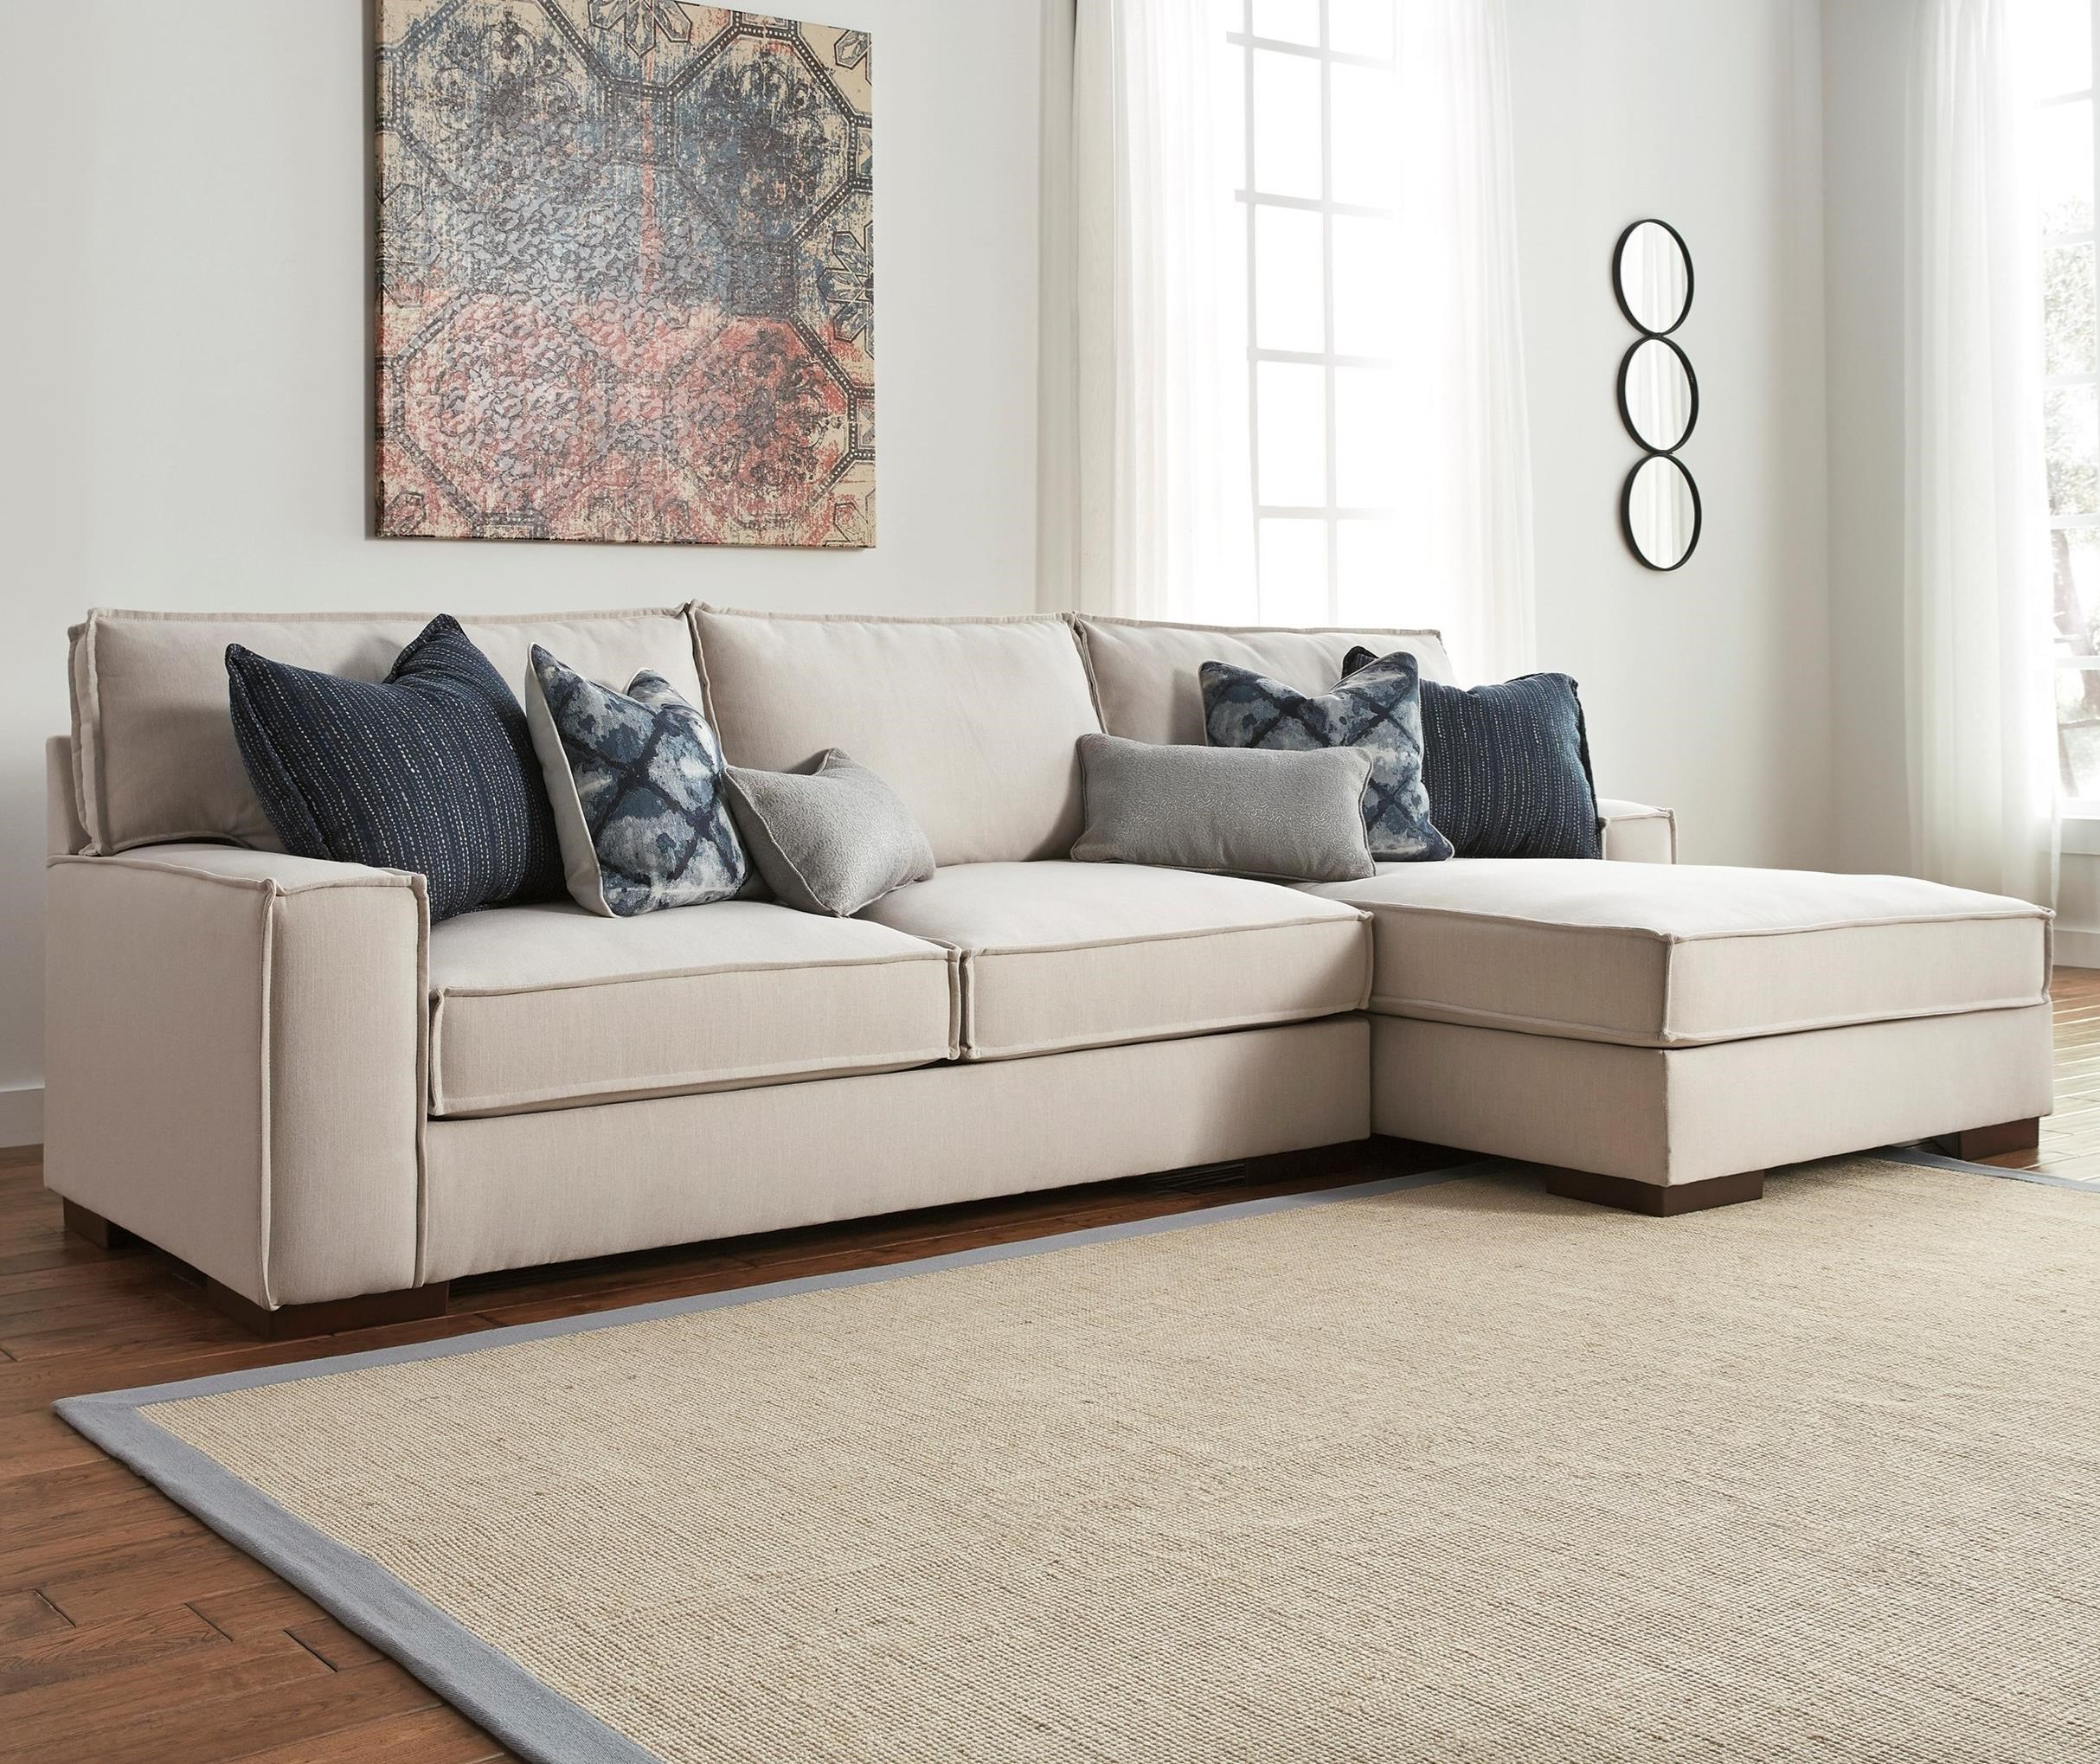 Benchcraft Kendleton 2-Piece Sectional with Right Chaise - Item Number: 5470466+17